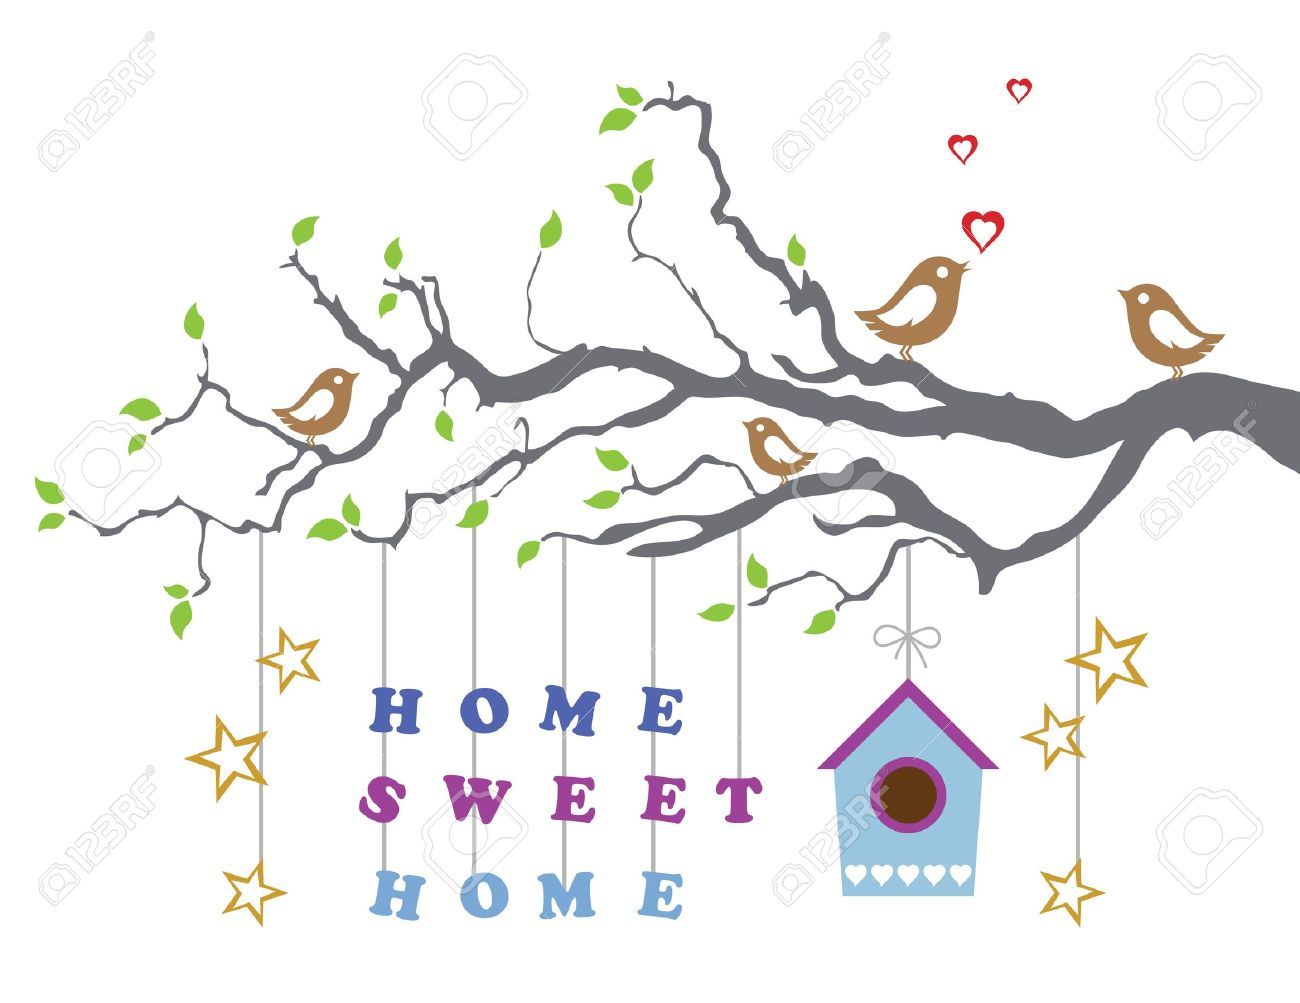 Home sweet home moving in new house greeting card royalty free home sweet home moving in new house greeting card stock vector 17280039 kristyandbryce Image collections